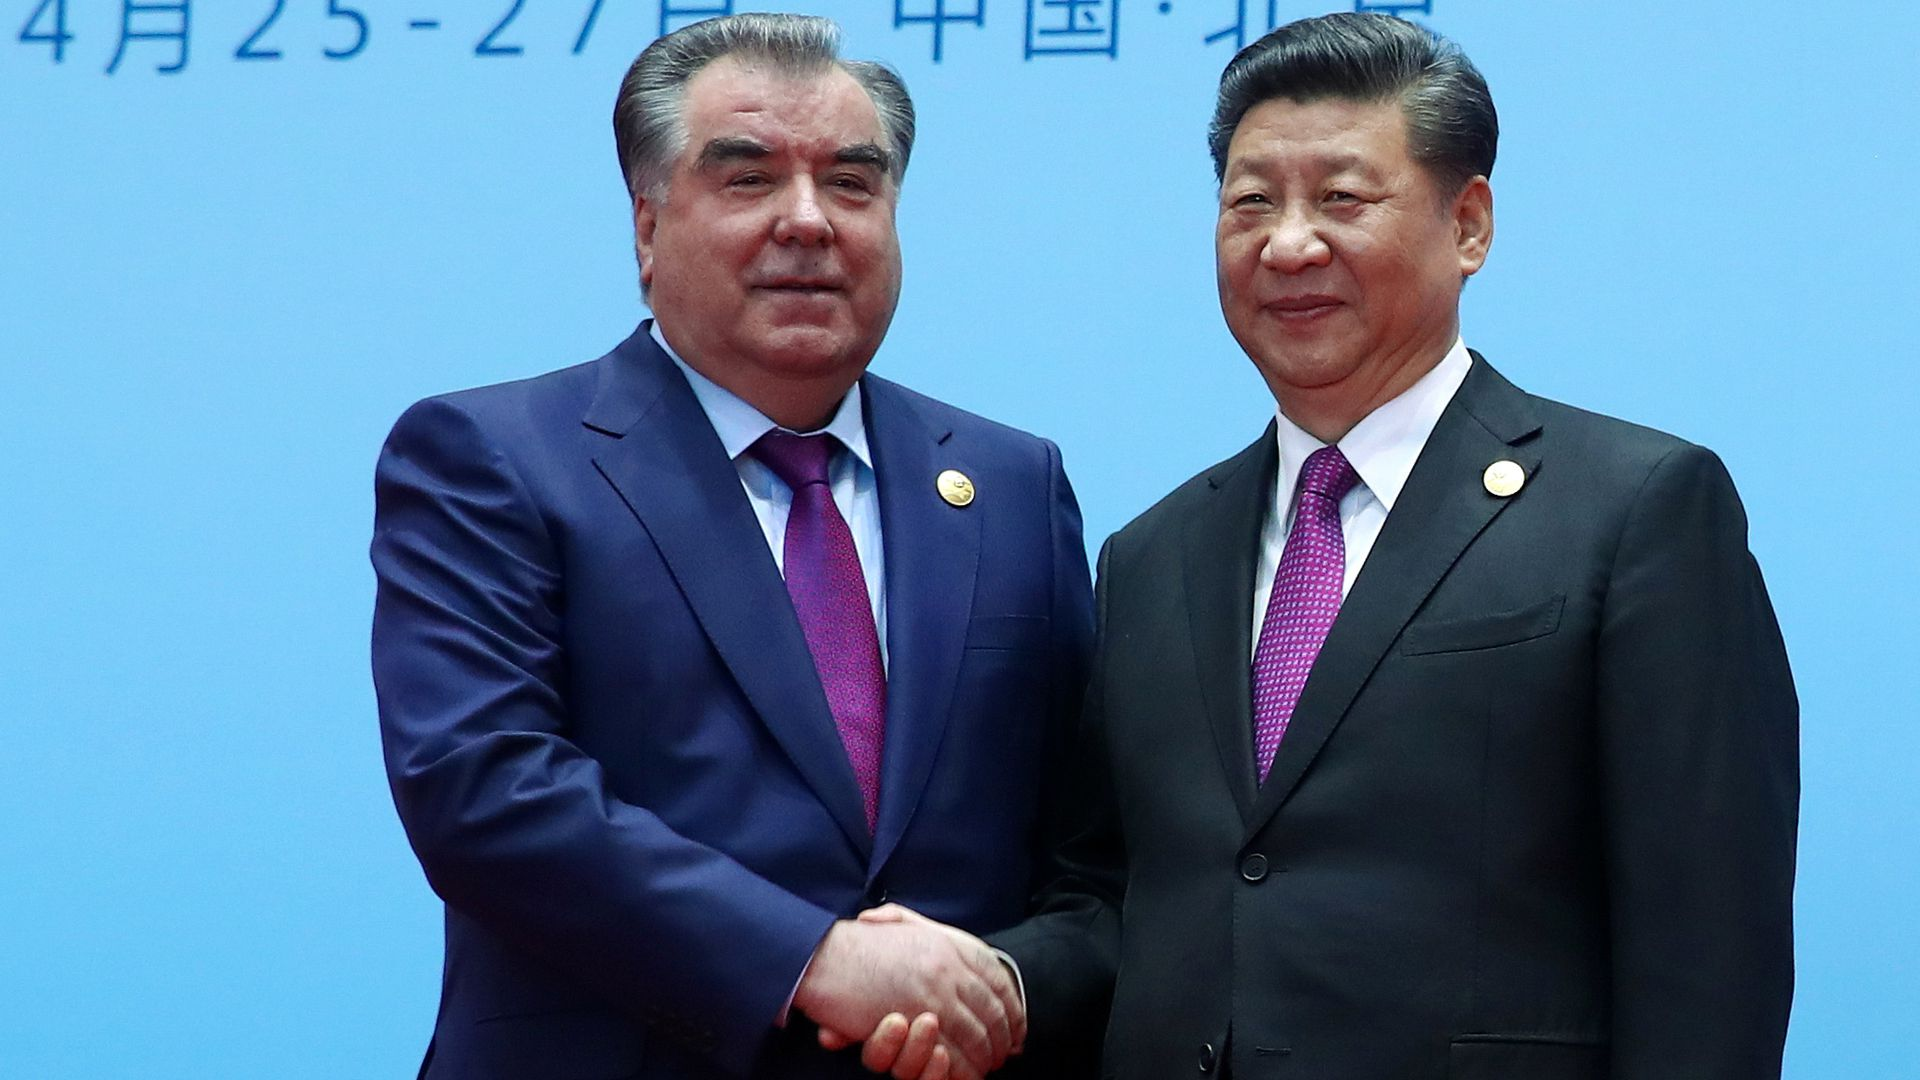 Xi Jinping and Emomali Rahmon shaking hands